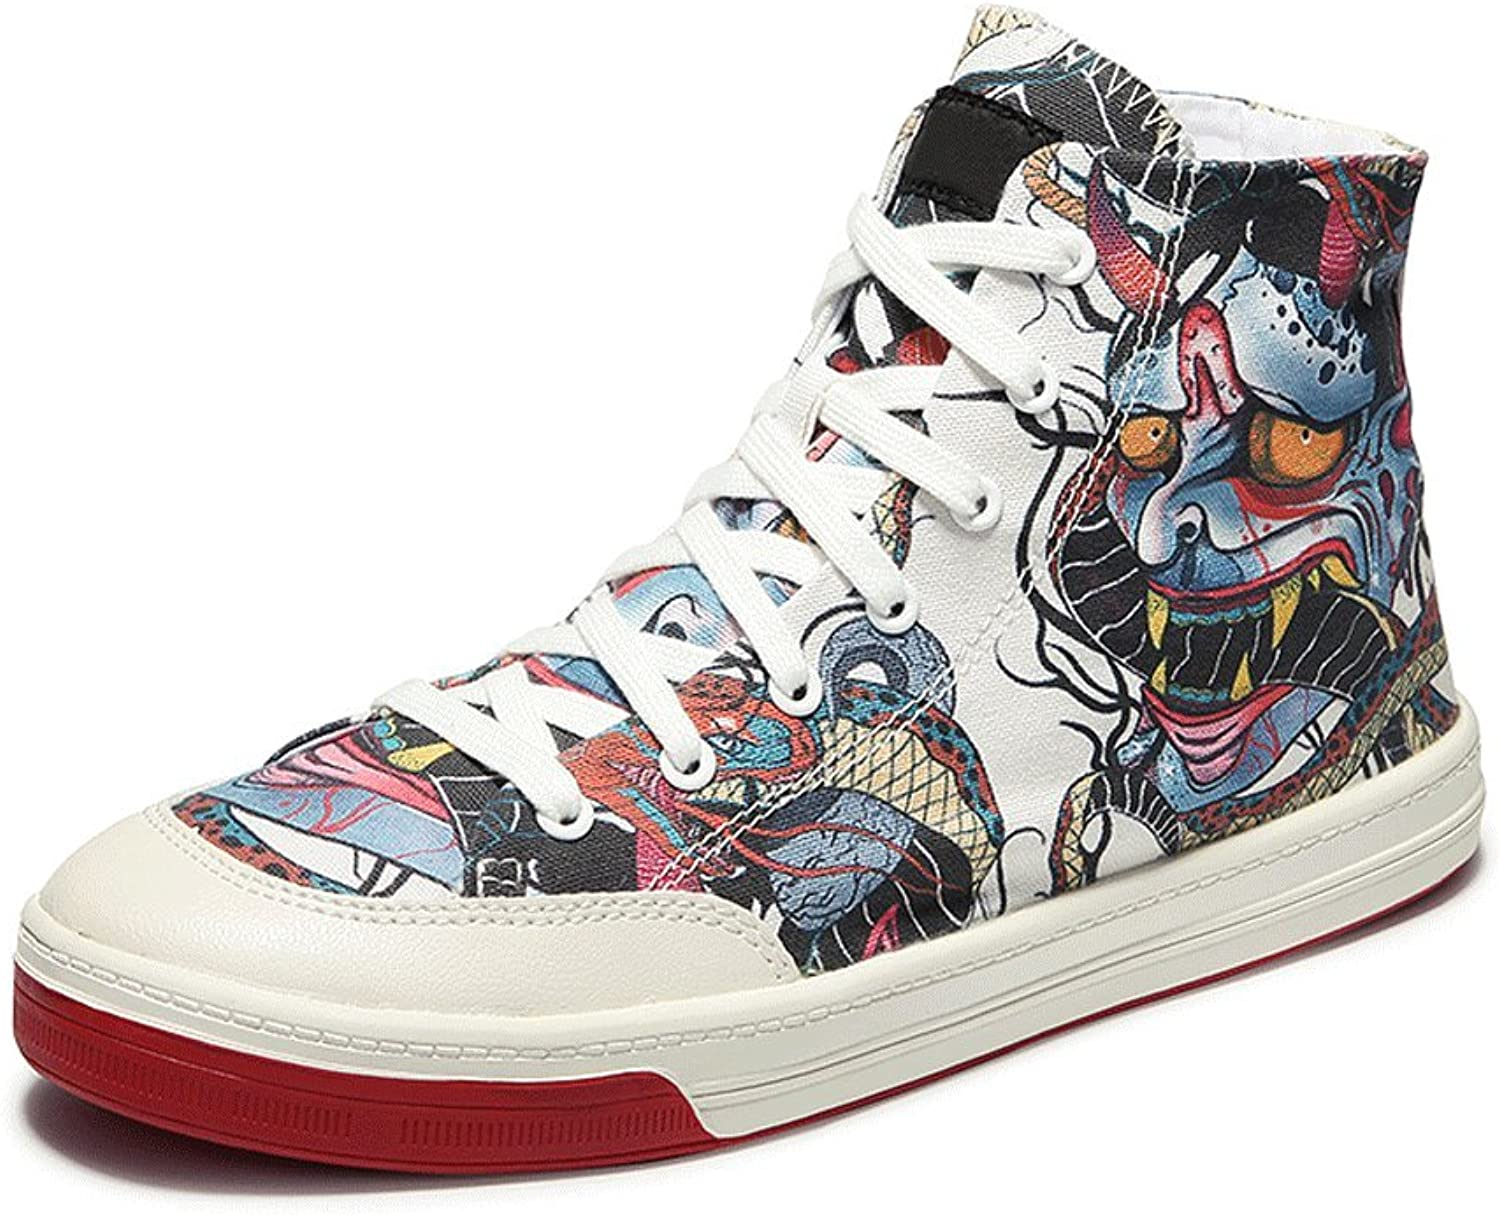 LIUXUEPING Summer Korean Version High Heel shoes shoes Hip-hop Graffiti Canvas shoes Male Student Tide shoes Male Hip-hop shoes (color   Multi-colord, Size   37)